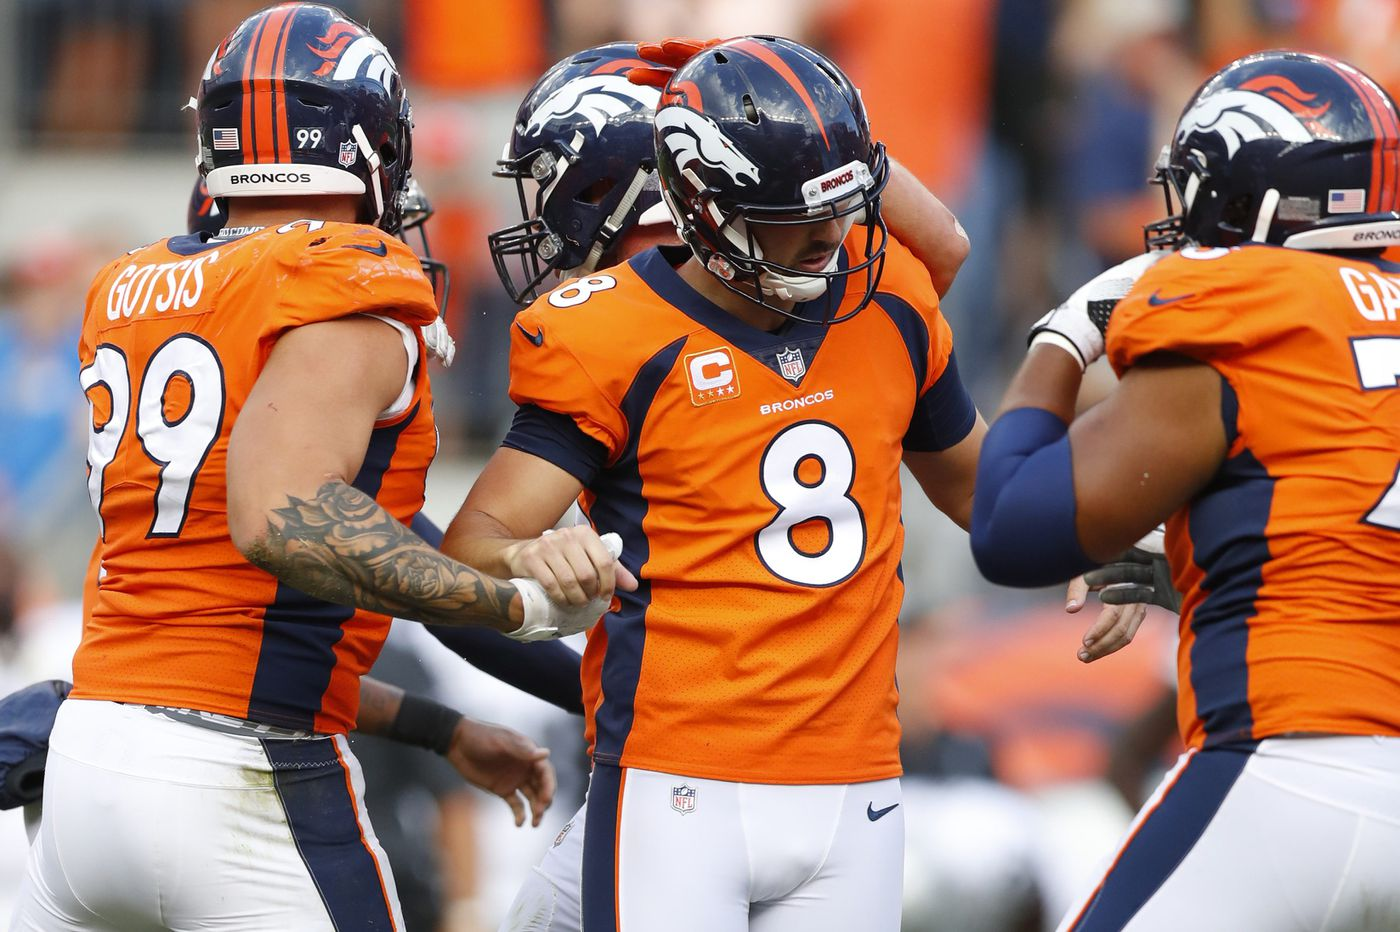 FanDuel gives in, pays disputed bets from Sunday's Broncos game